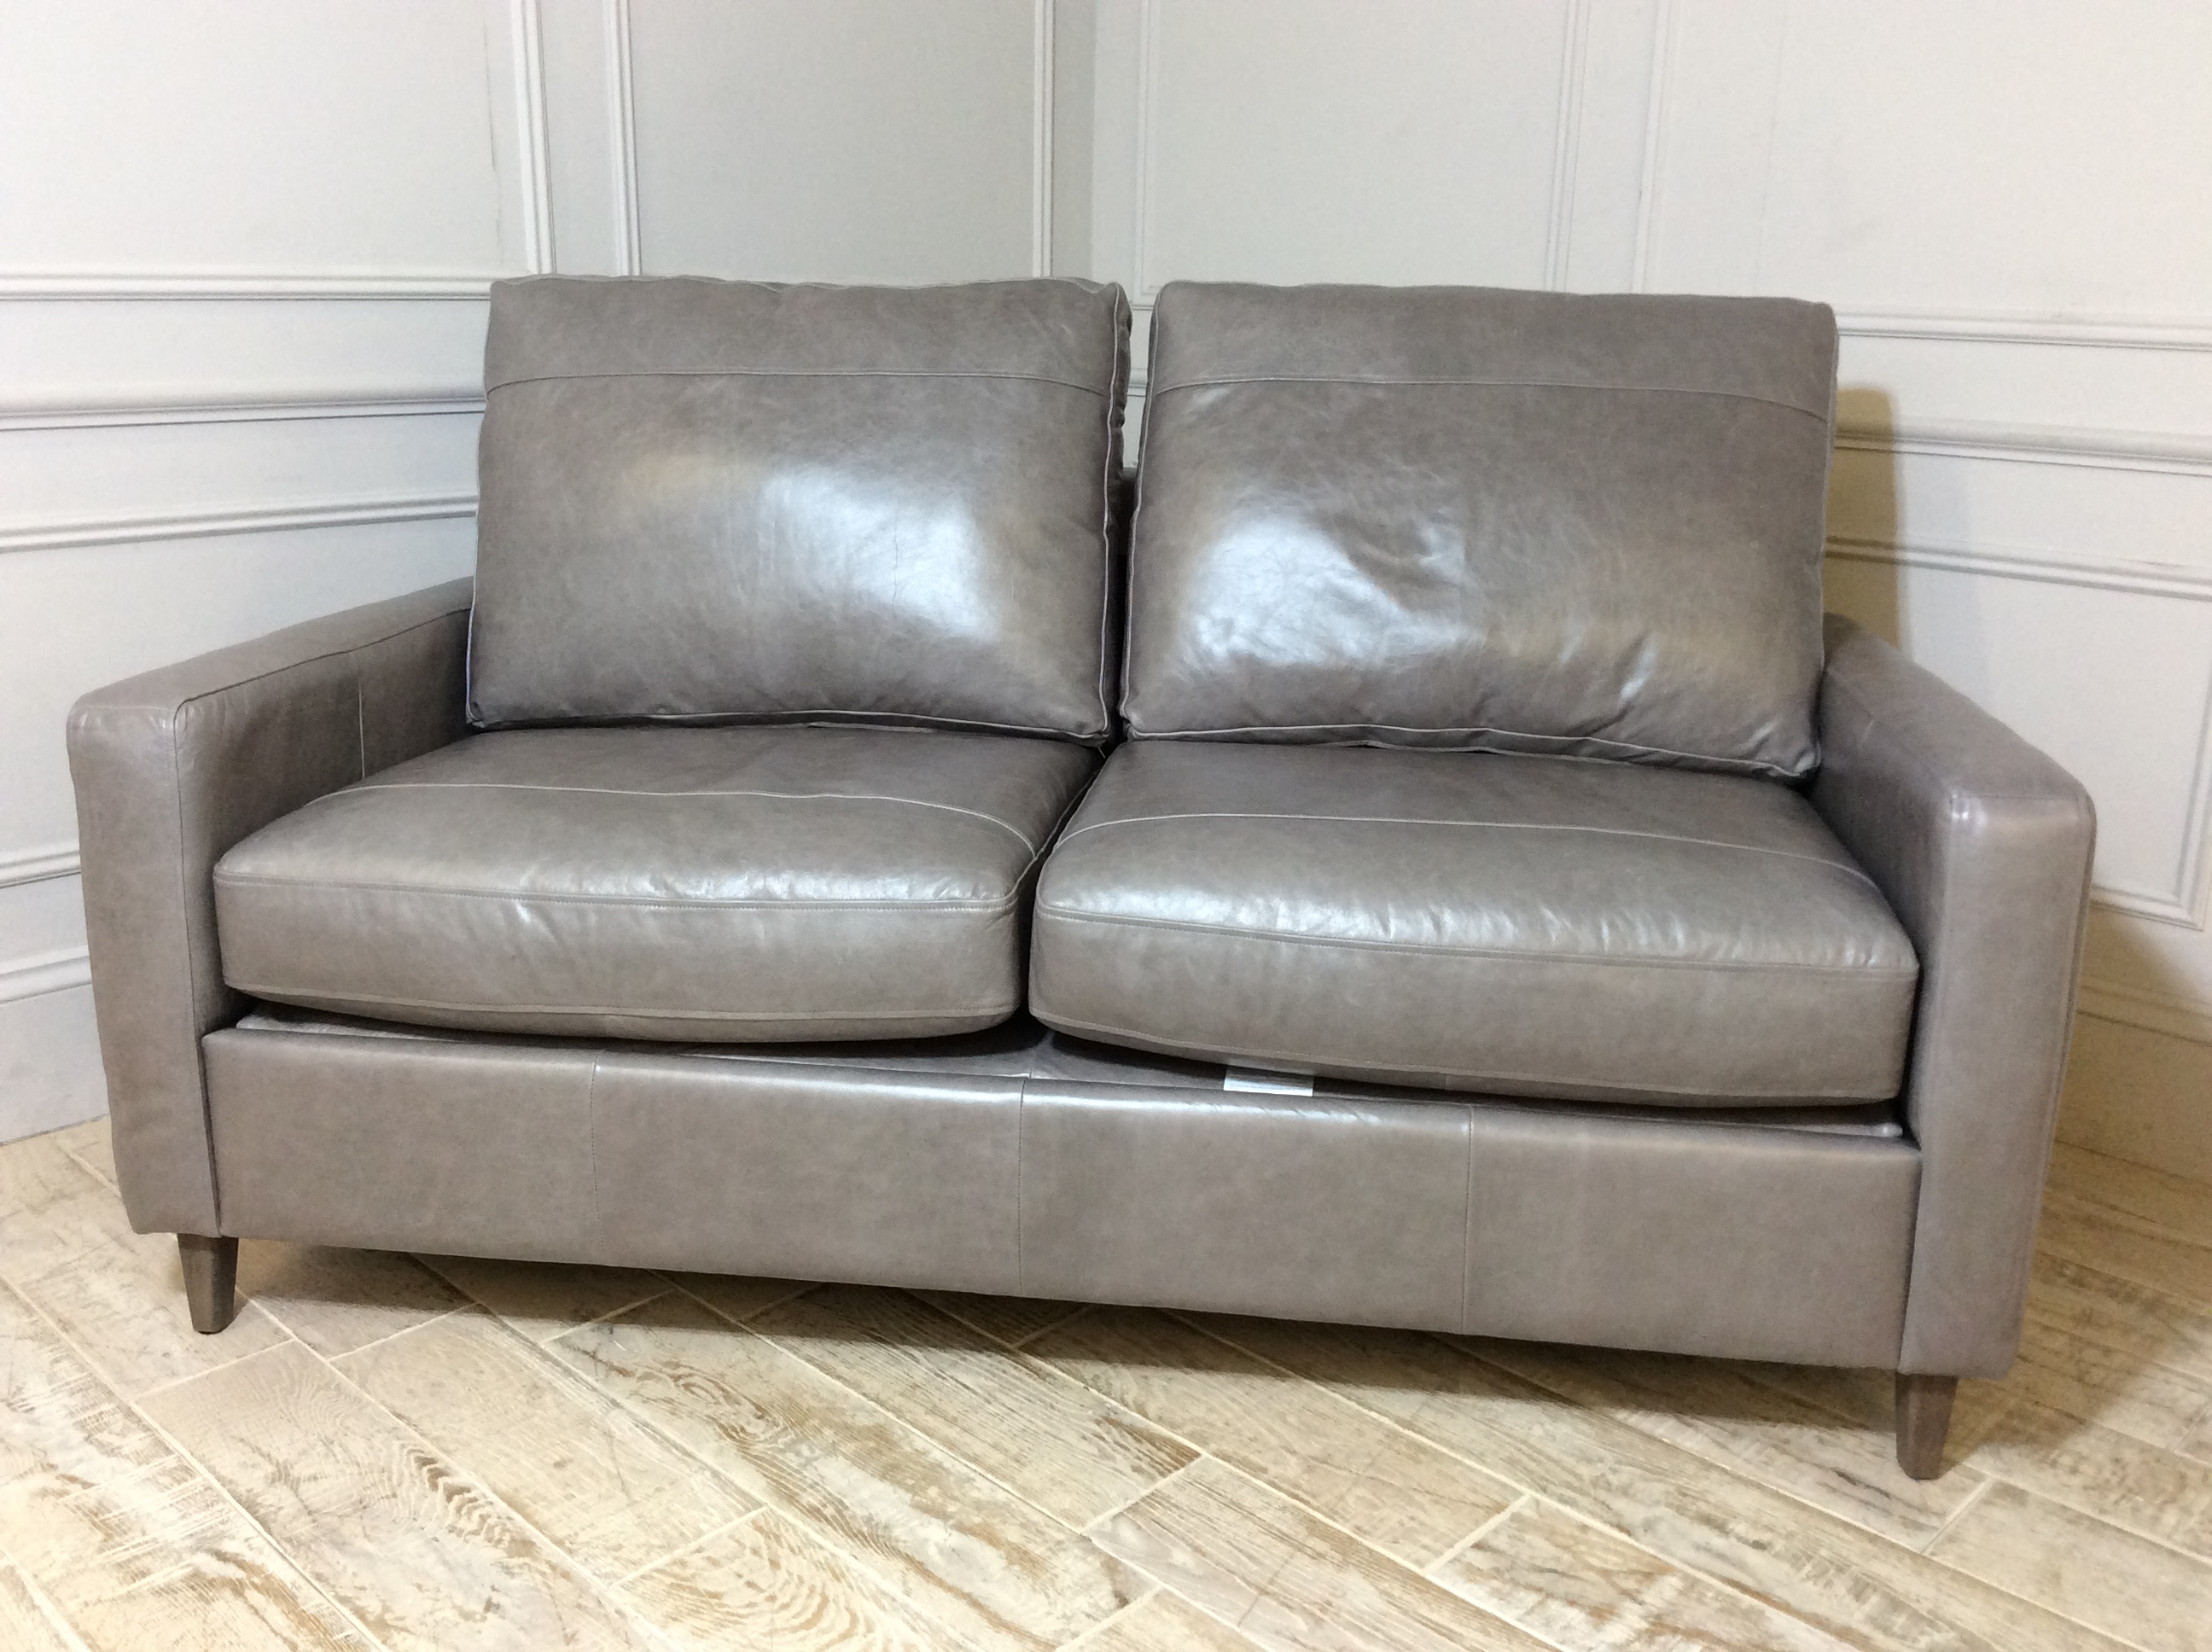 Beckenham 3 Seater Leather Sofa Bed in Slate